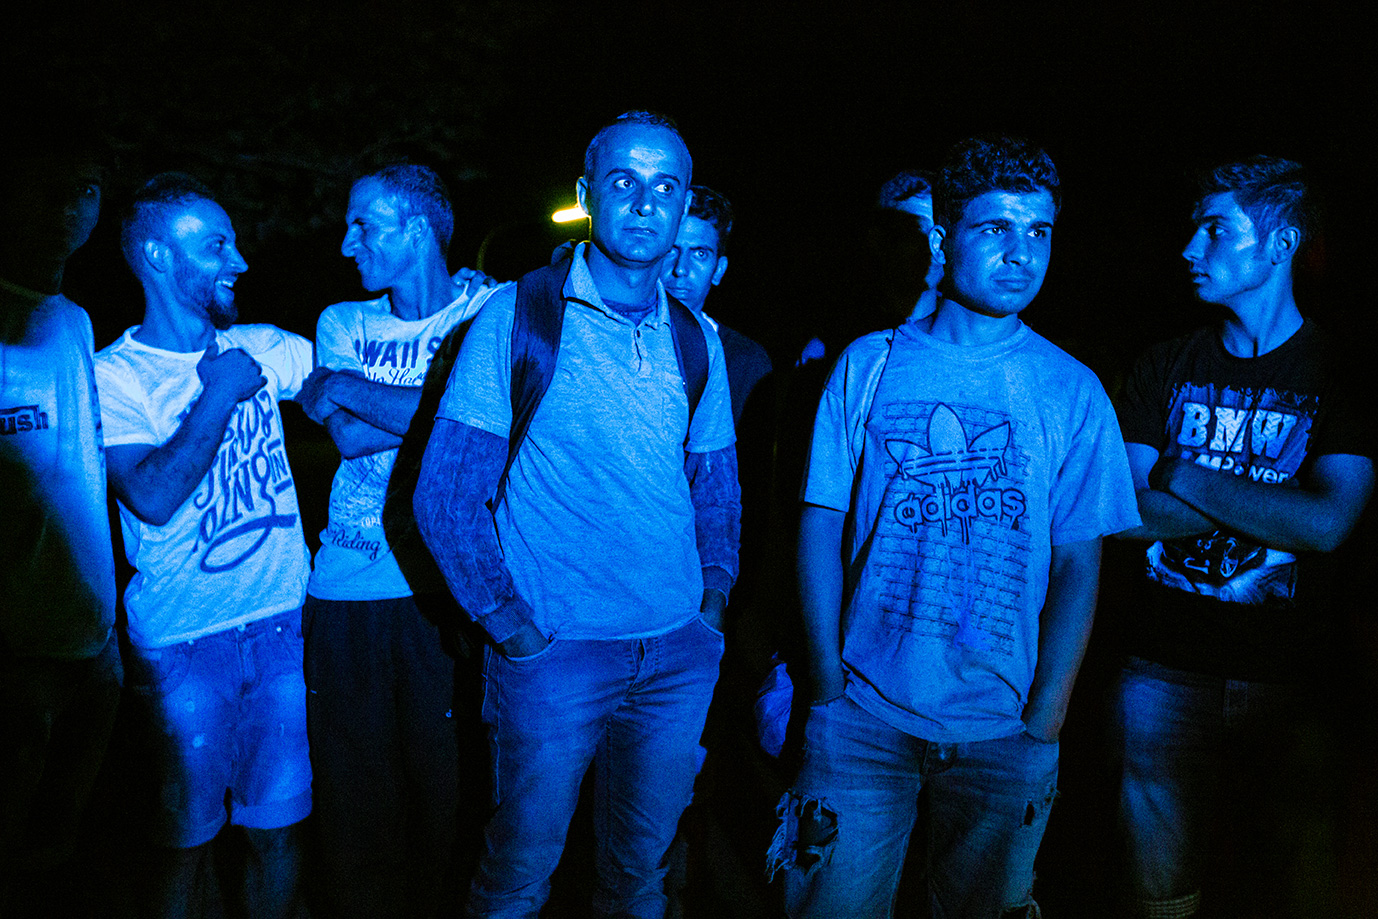 04_Iraqi-christian-refugees-arrive-Germany-blue-police-light